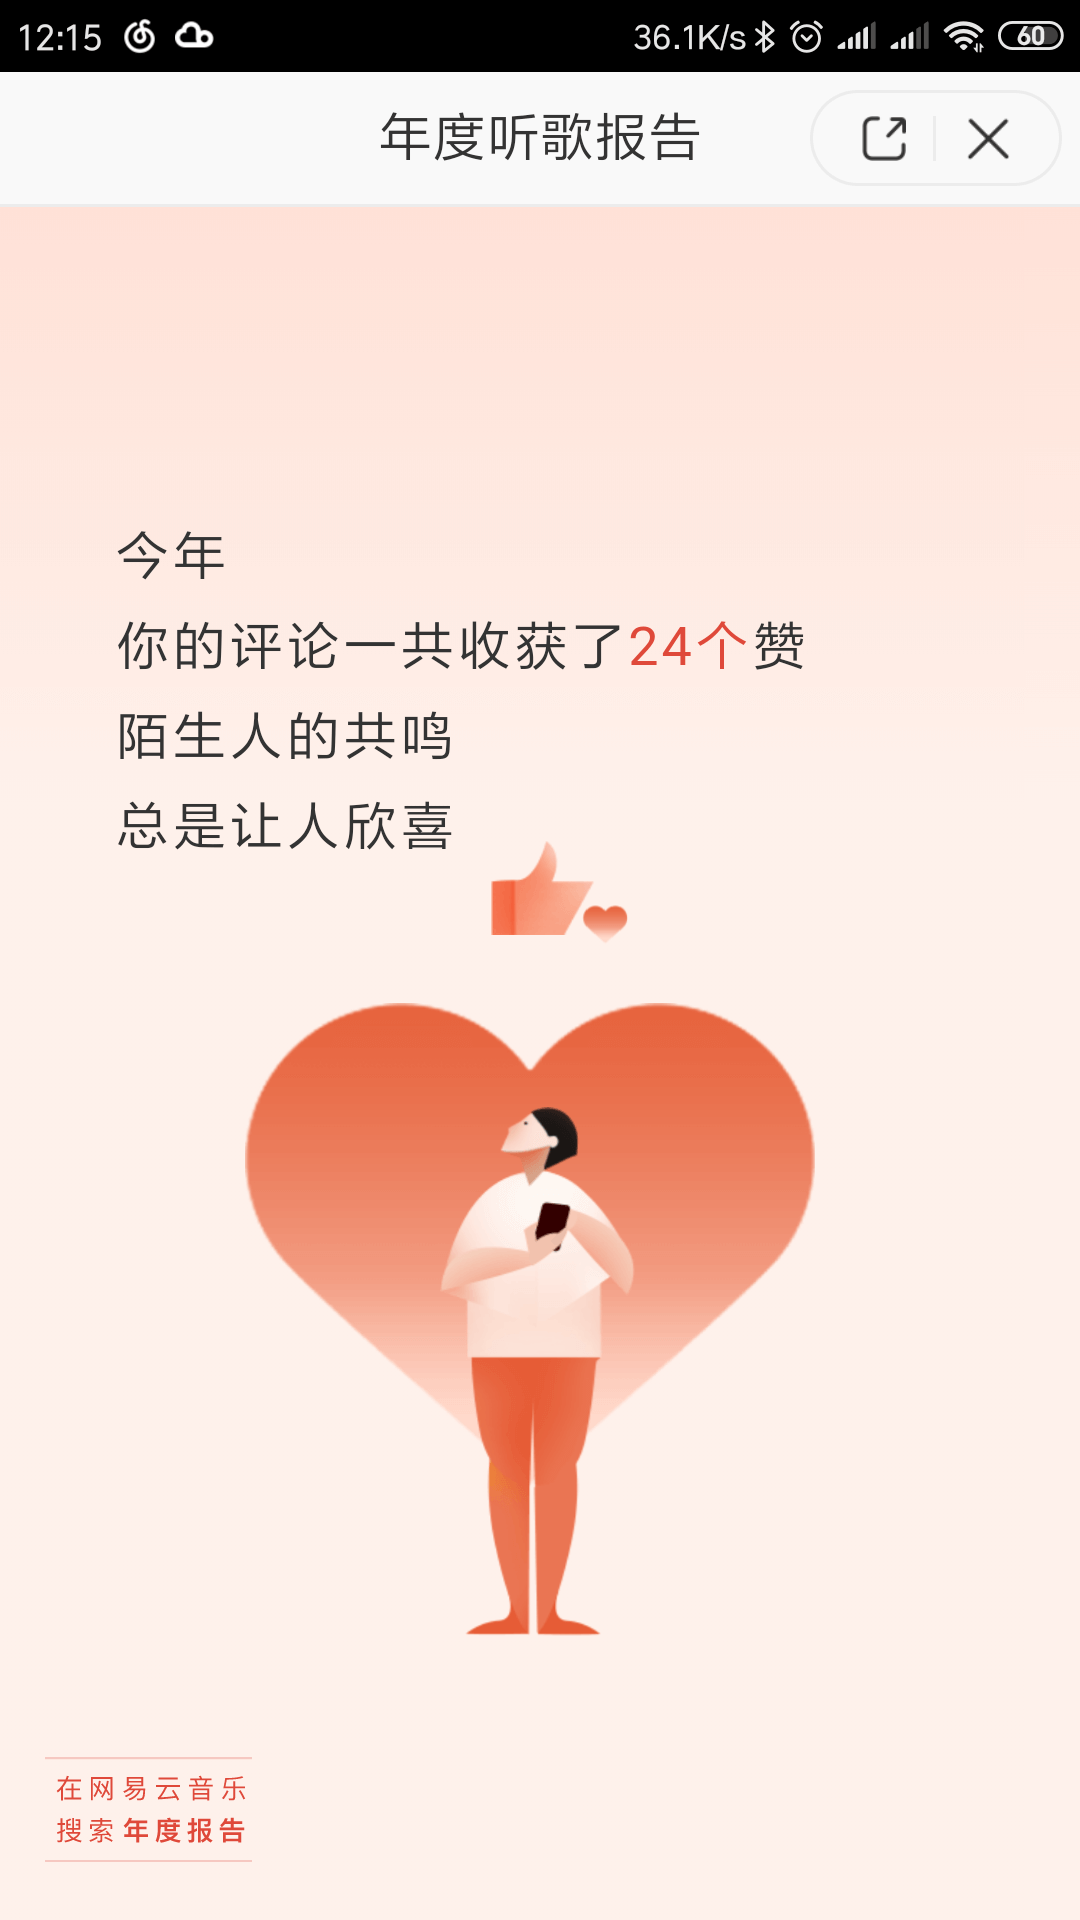 Screenshot_2019-01-04-12-15-59-986_com.netease.cloudmusic.png